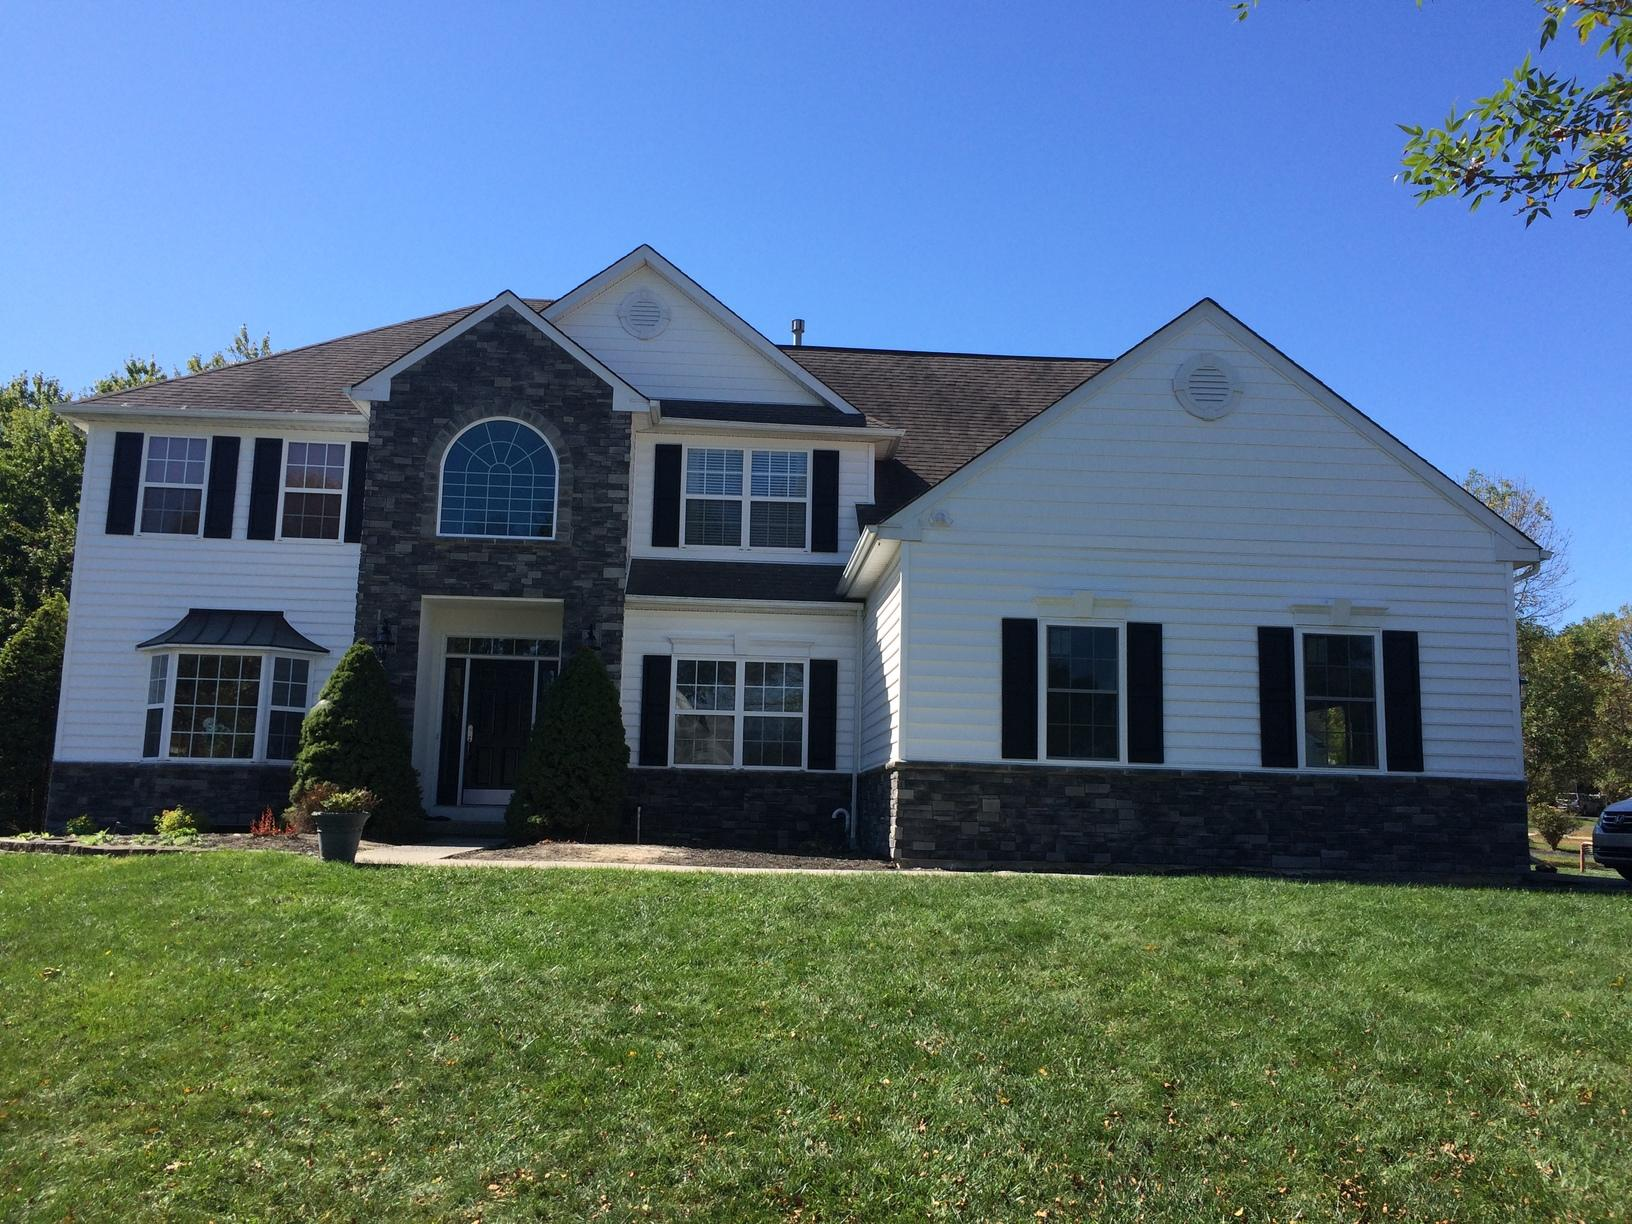 Stone and White Vinyl Siding Installation in North Wales, PA - After Photo